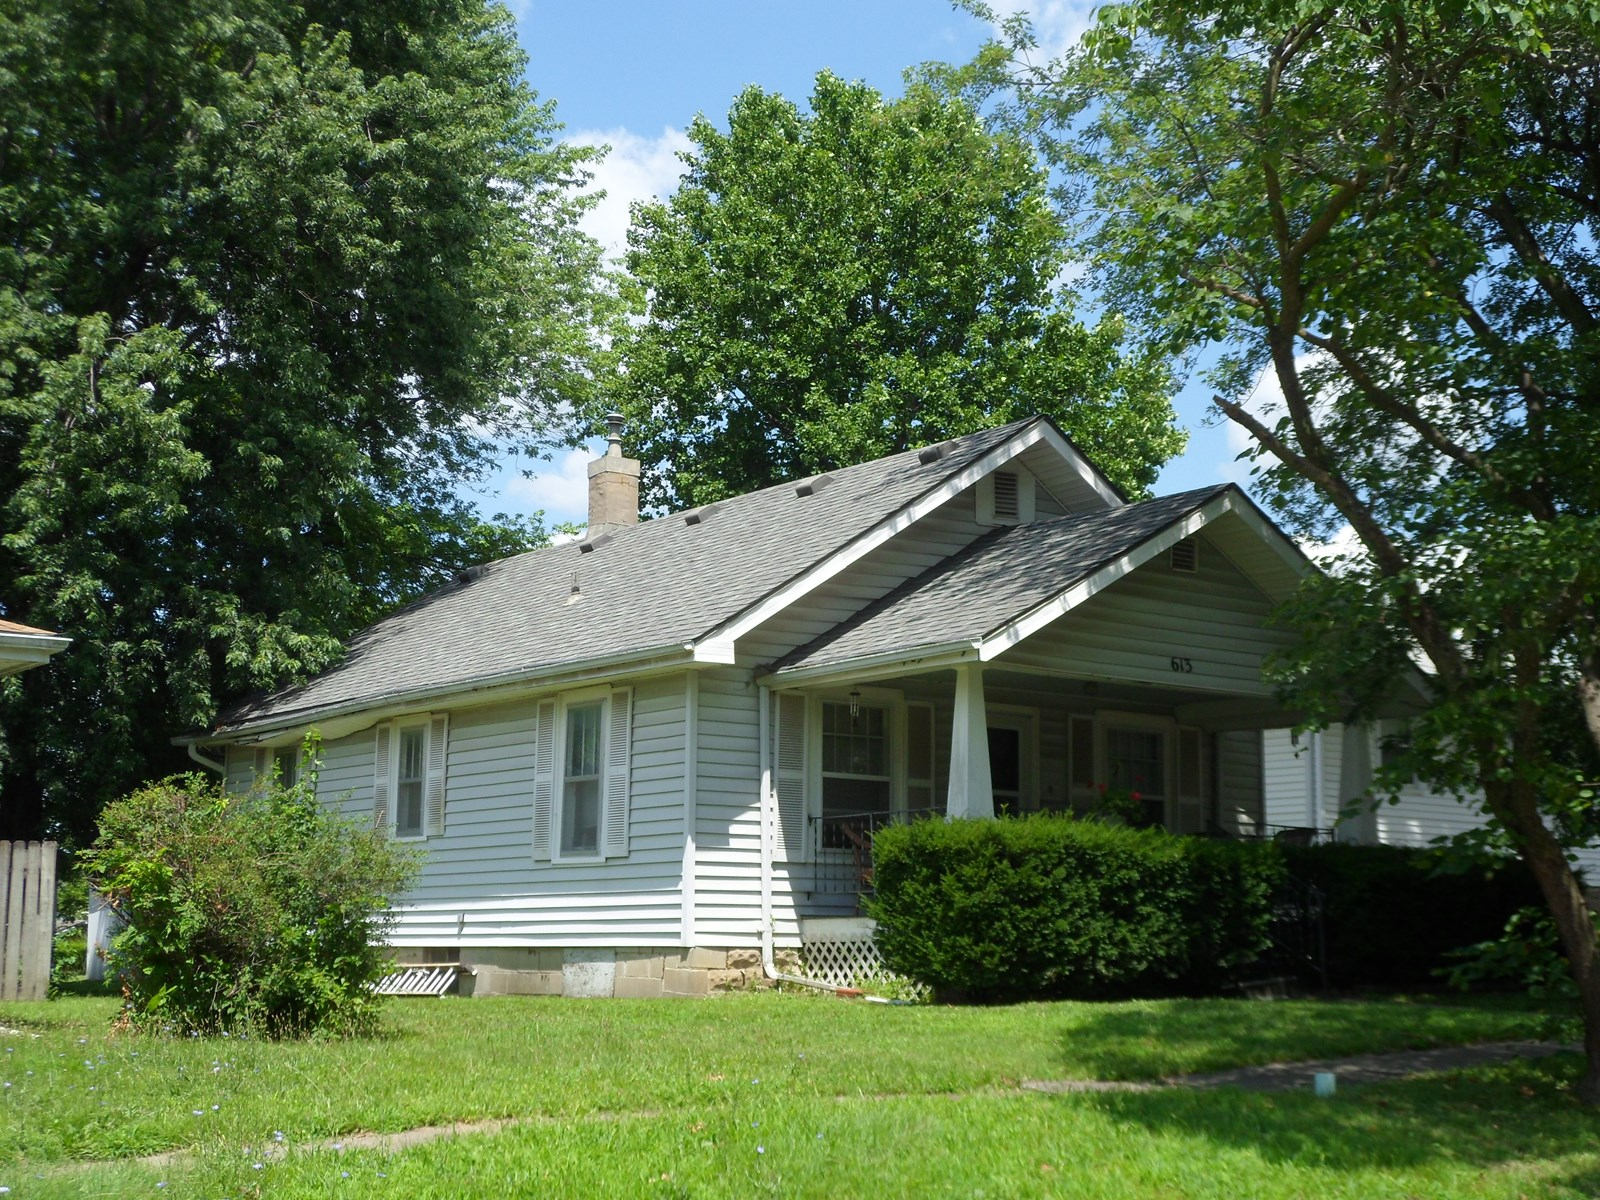 2 BEDROOM BUNGALOW FOR SALE IN CAMERON MO